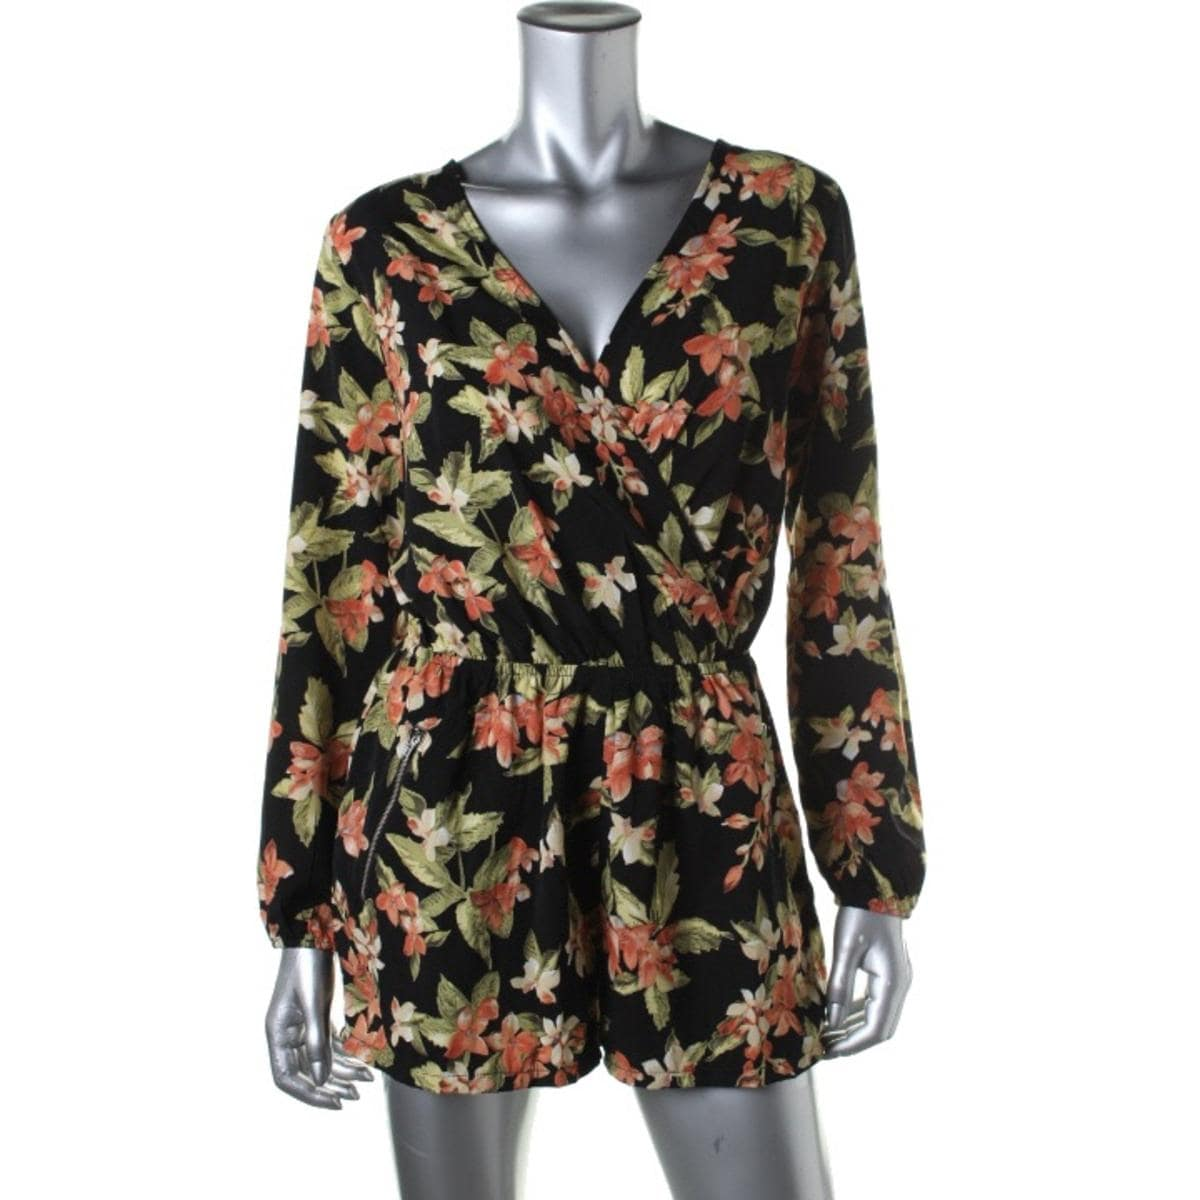 a2f8872850cf Shop One Clothing Womens Juniors Romper Floral Print Surplice - Free  Shipping On Orders Over  45 - Overstock - 14325336